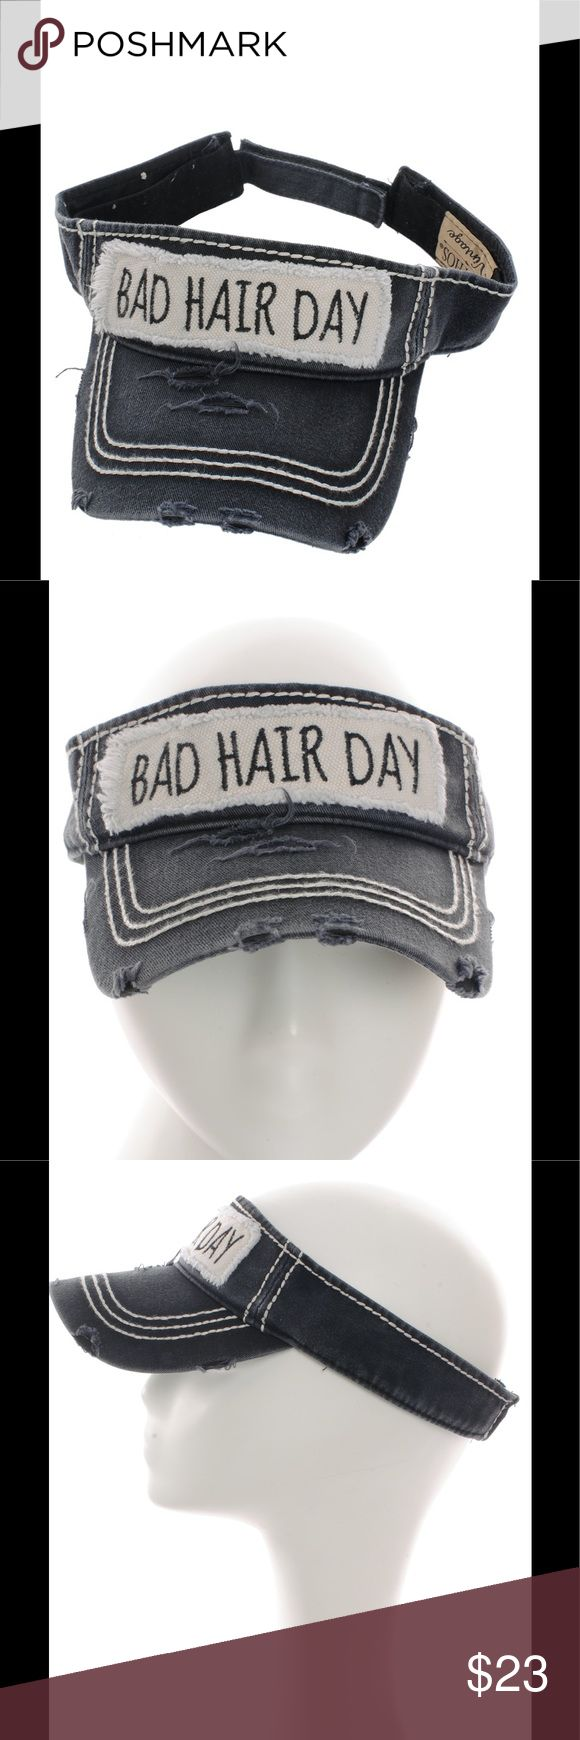 """Distressed Bad Hair Day Sun Visor Country Hat Check out our other hats and accessories and bundle!   Hat Brand NEW and not used!   SORRY NO TRADES! Embroidered Bad Hair Day Sun Visor Distressed Vintage Style Velcro Adjustable Back Material : 100% Cotton Size : 7.50""""(L) X 7.50""""(W) X 4""""(H) - Brim Length: 2.75"""" Accessories Hats"""